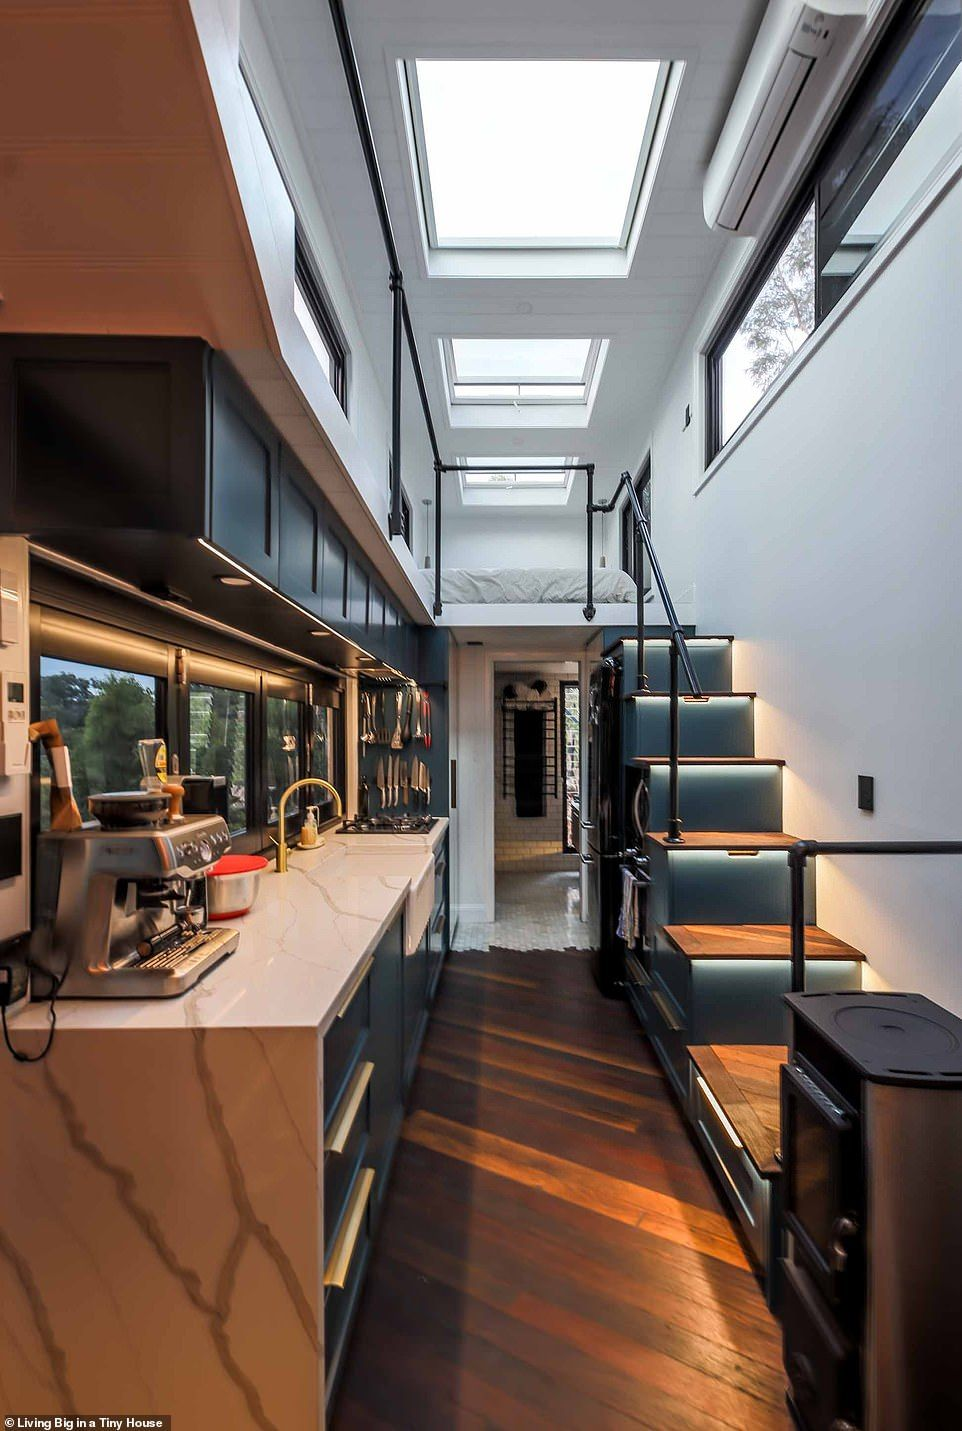 Couple builds tiny home on wheels for just $90,000